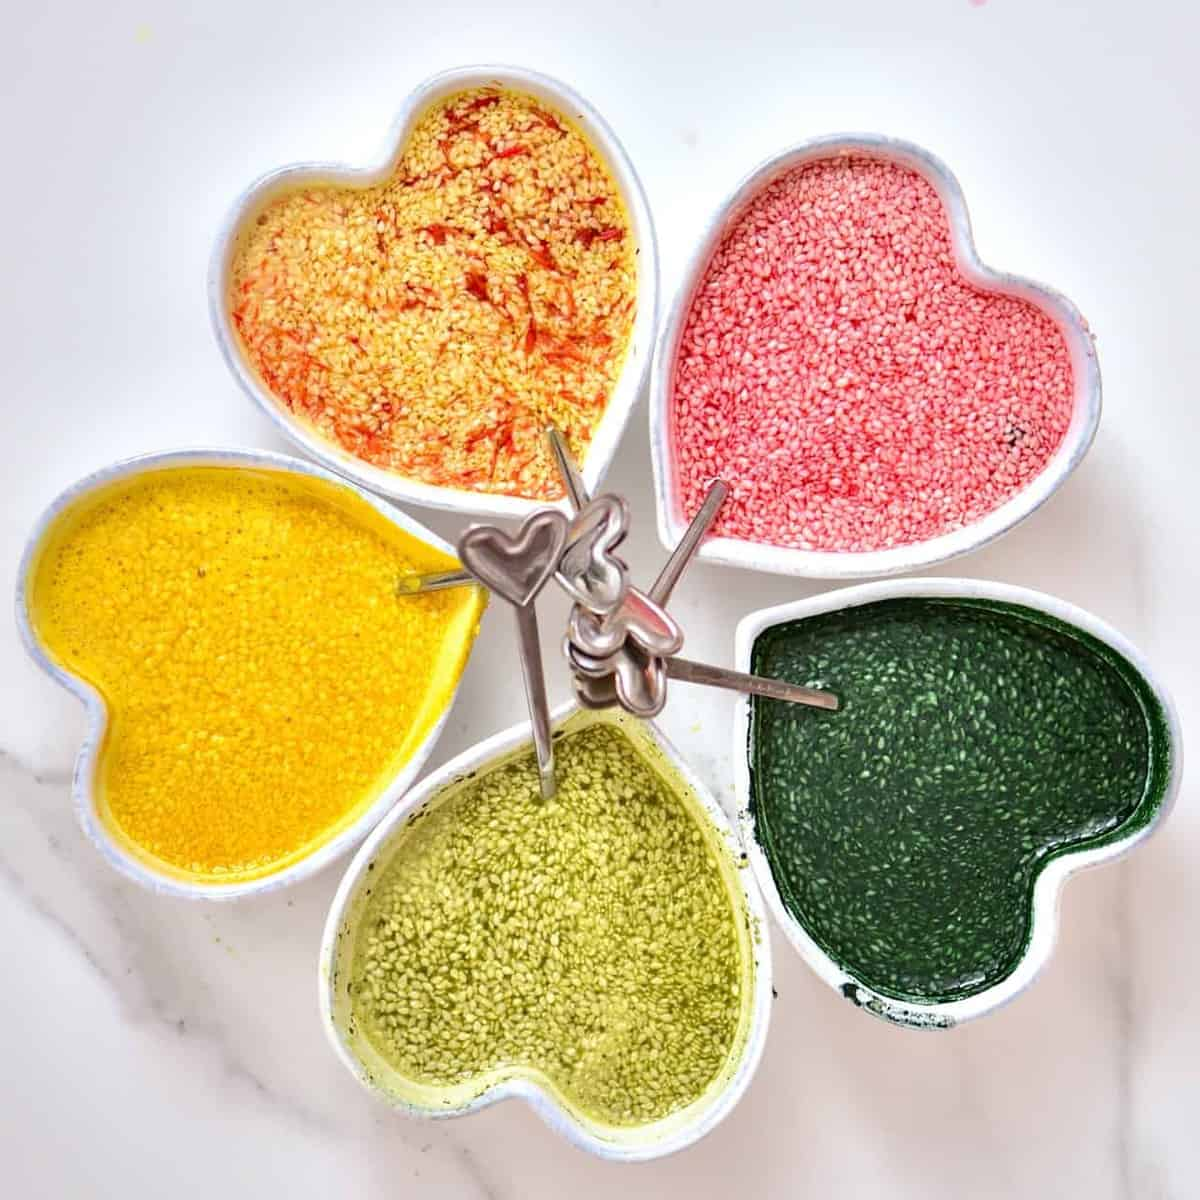 100% natural food colouring for sesame seeds